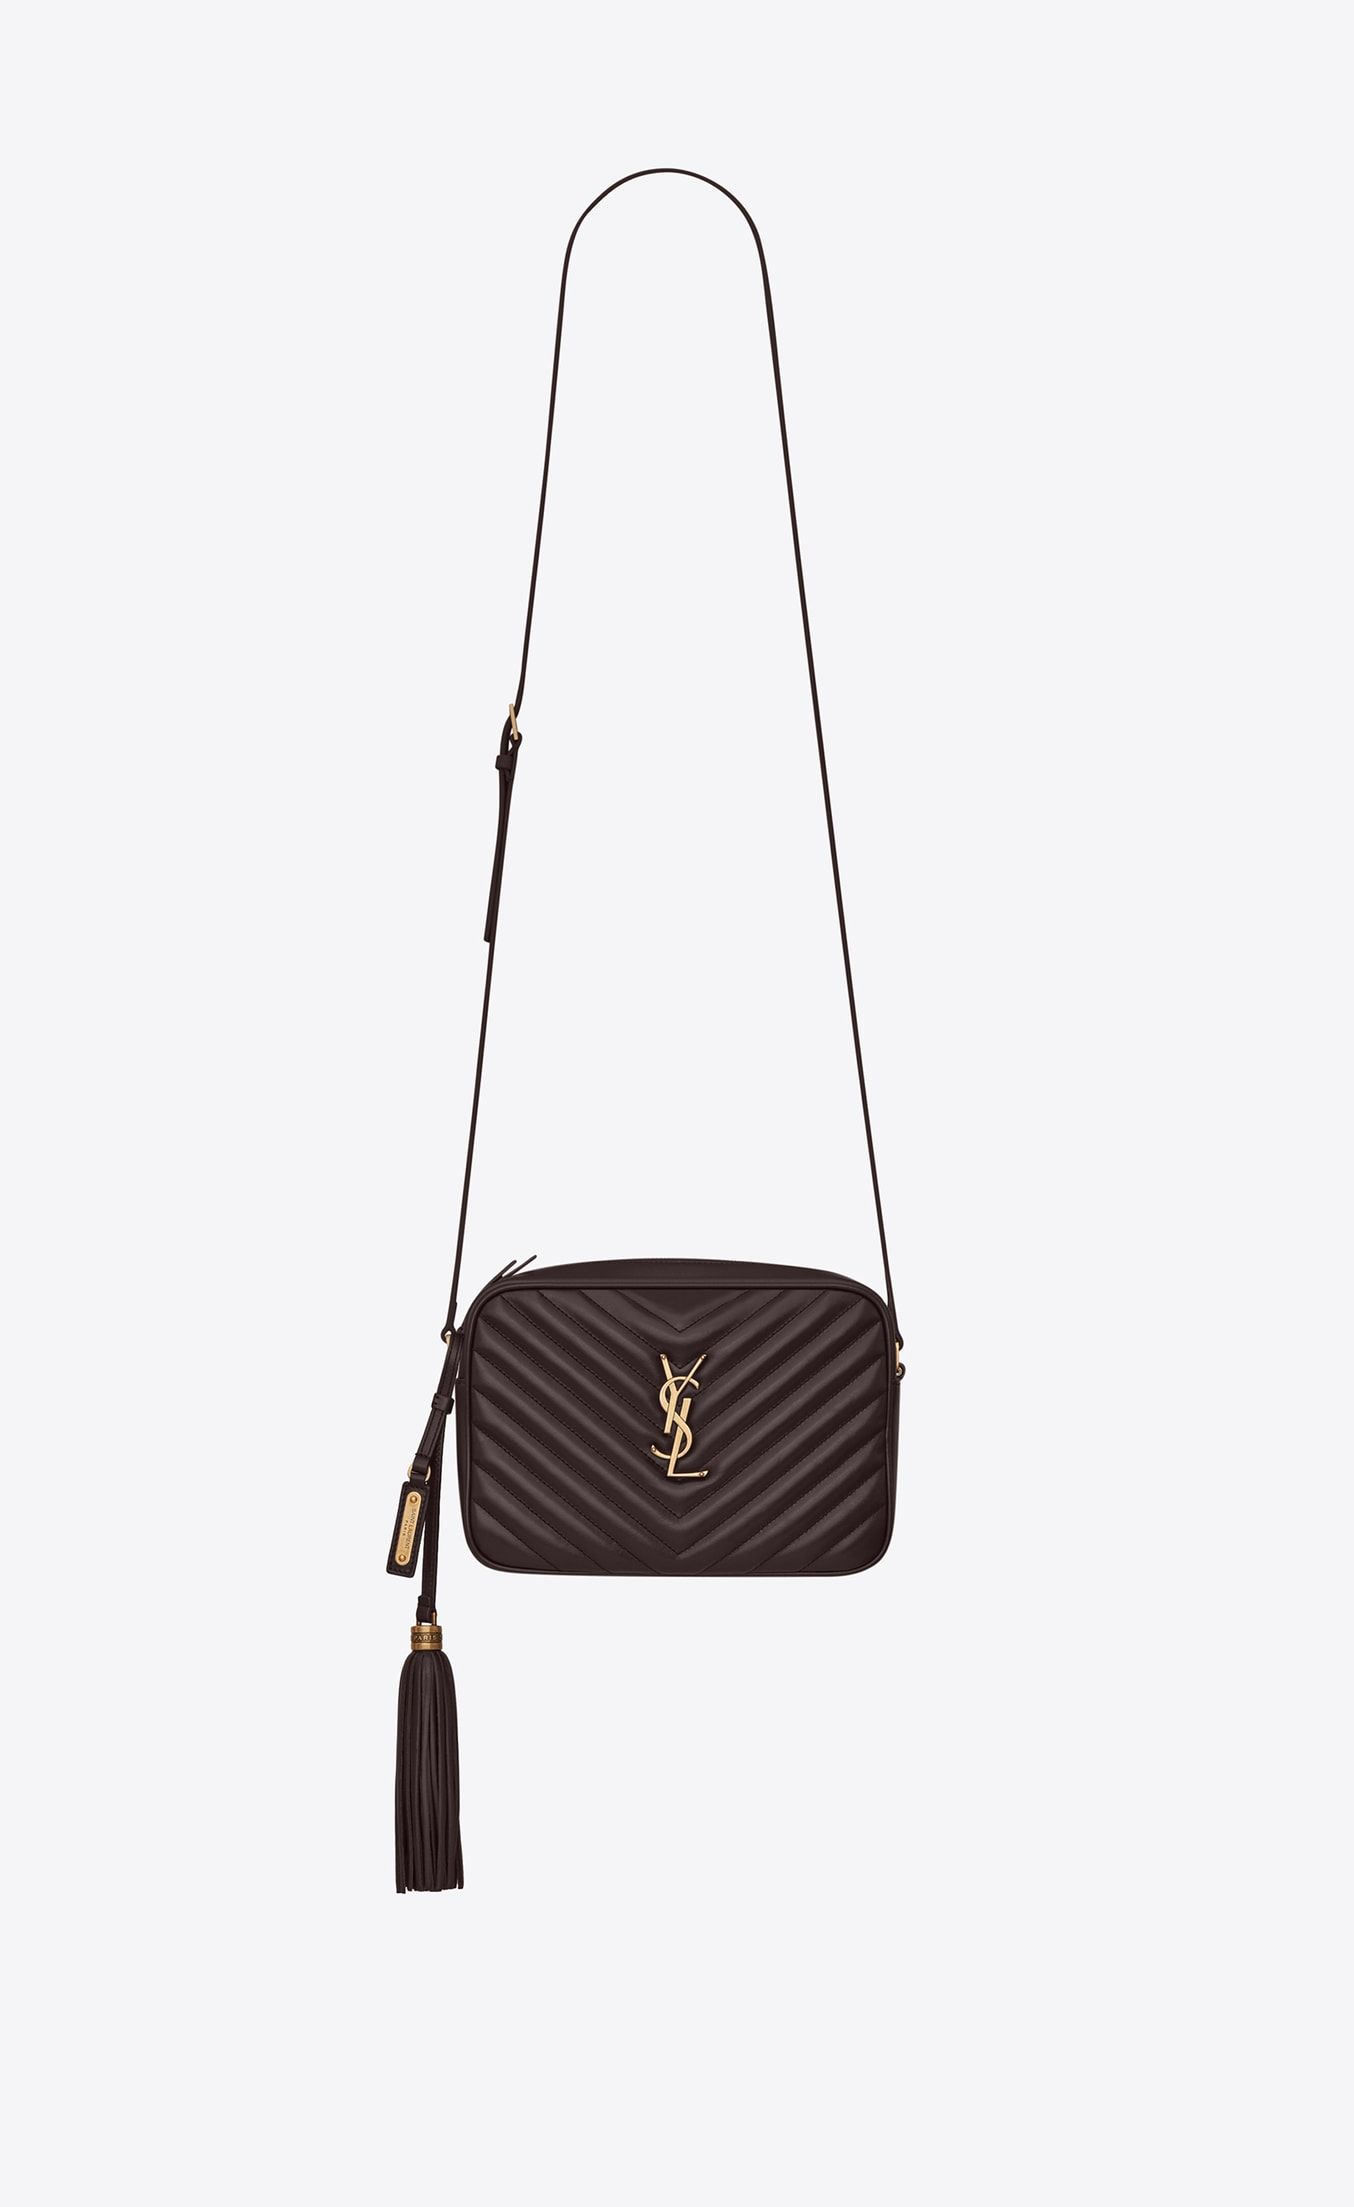 ff6d0636bf98 Saint Laurent LOU Camera Bag In Quilted Black Tulip Leather | YSL.com